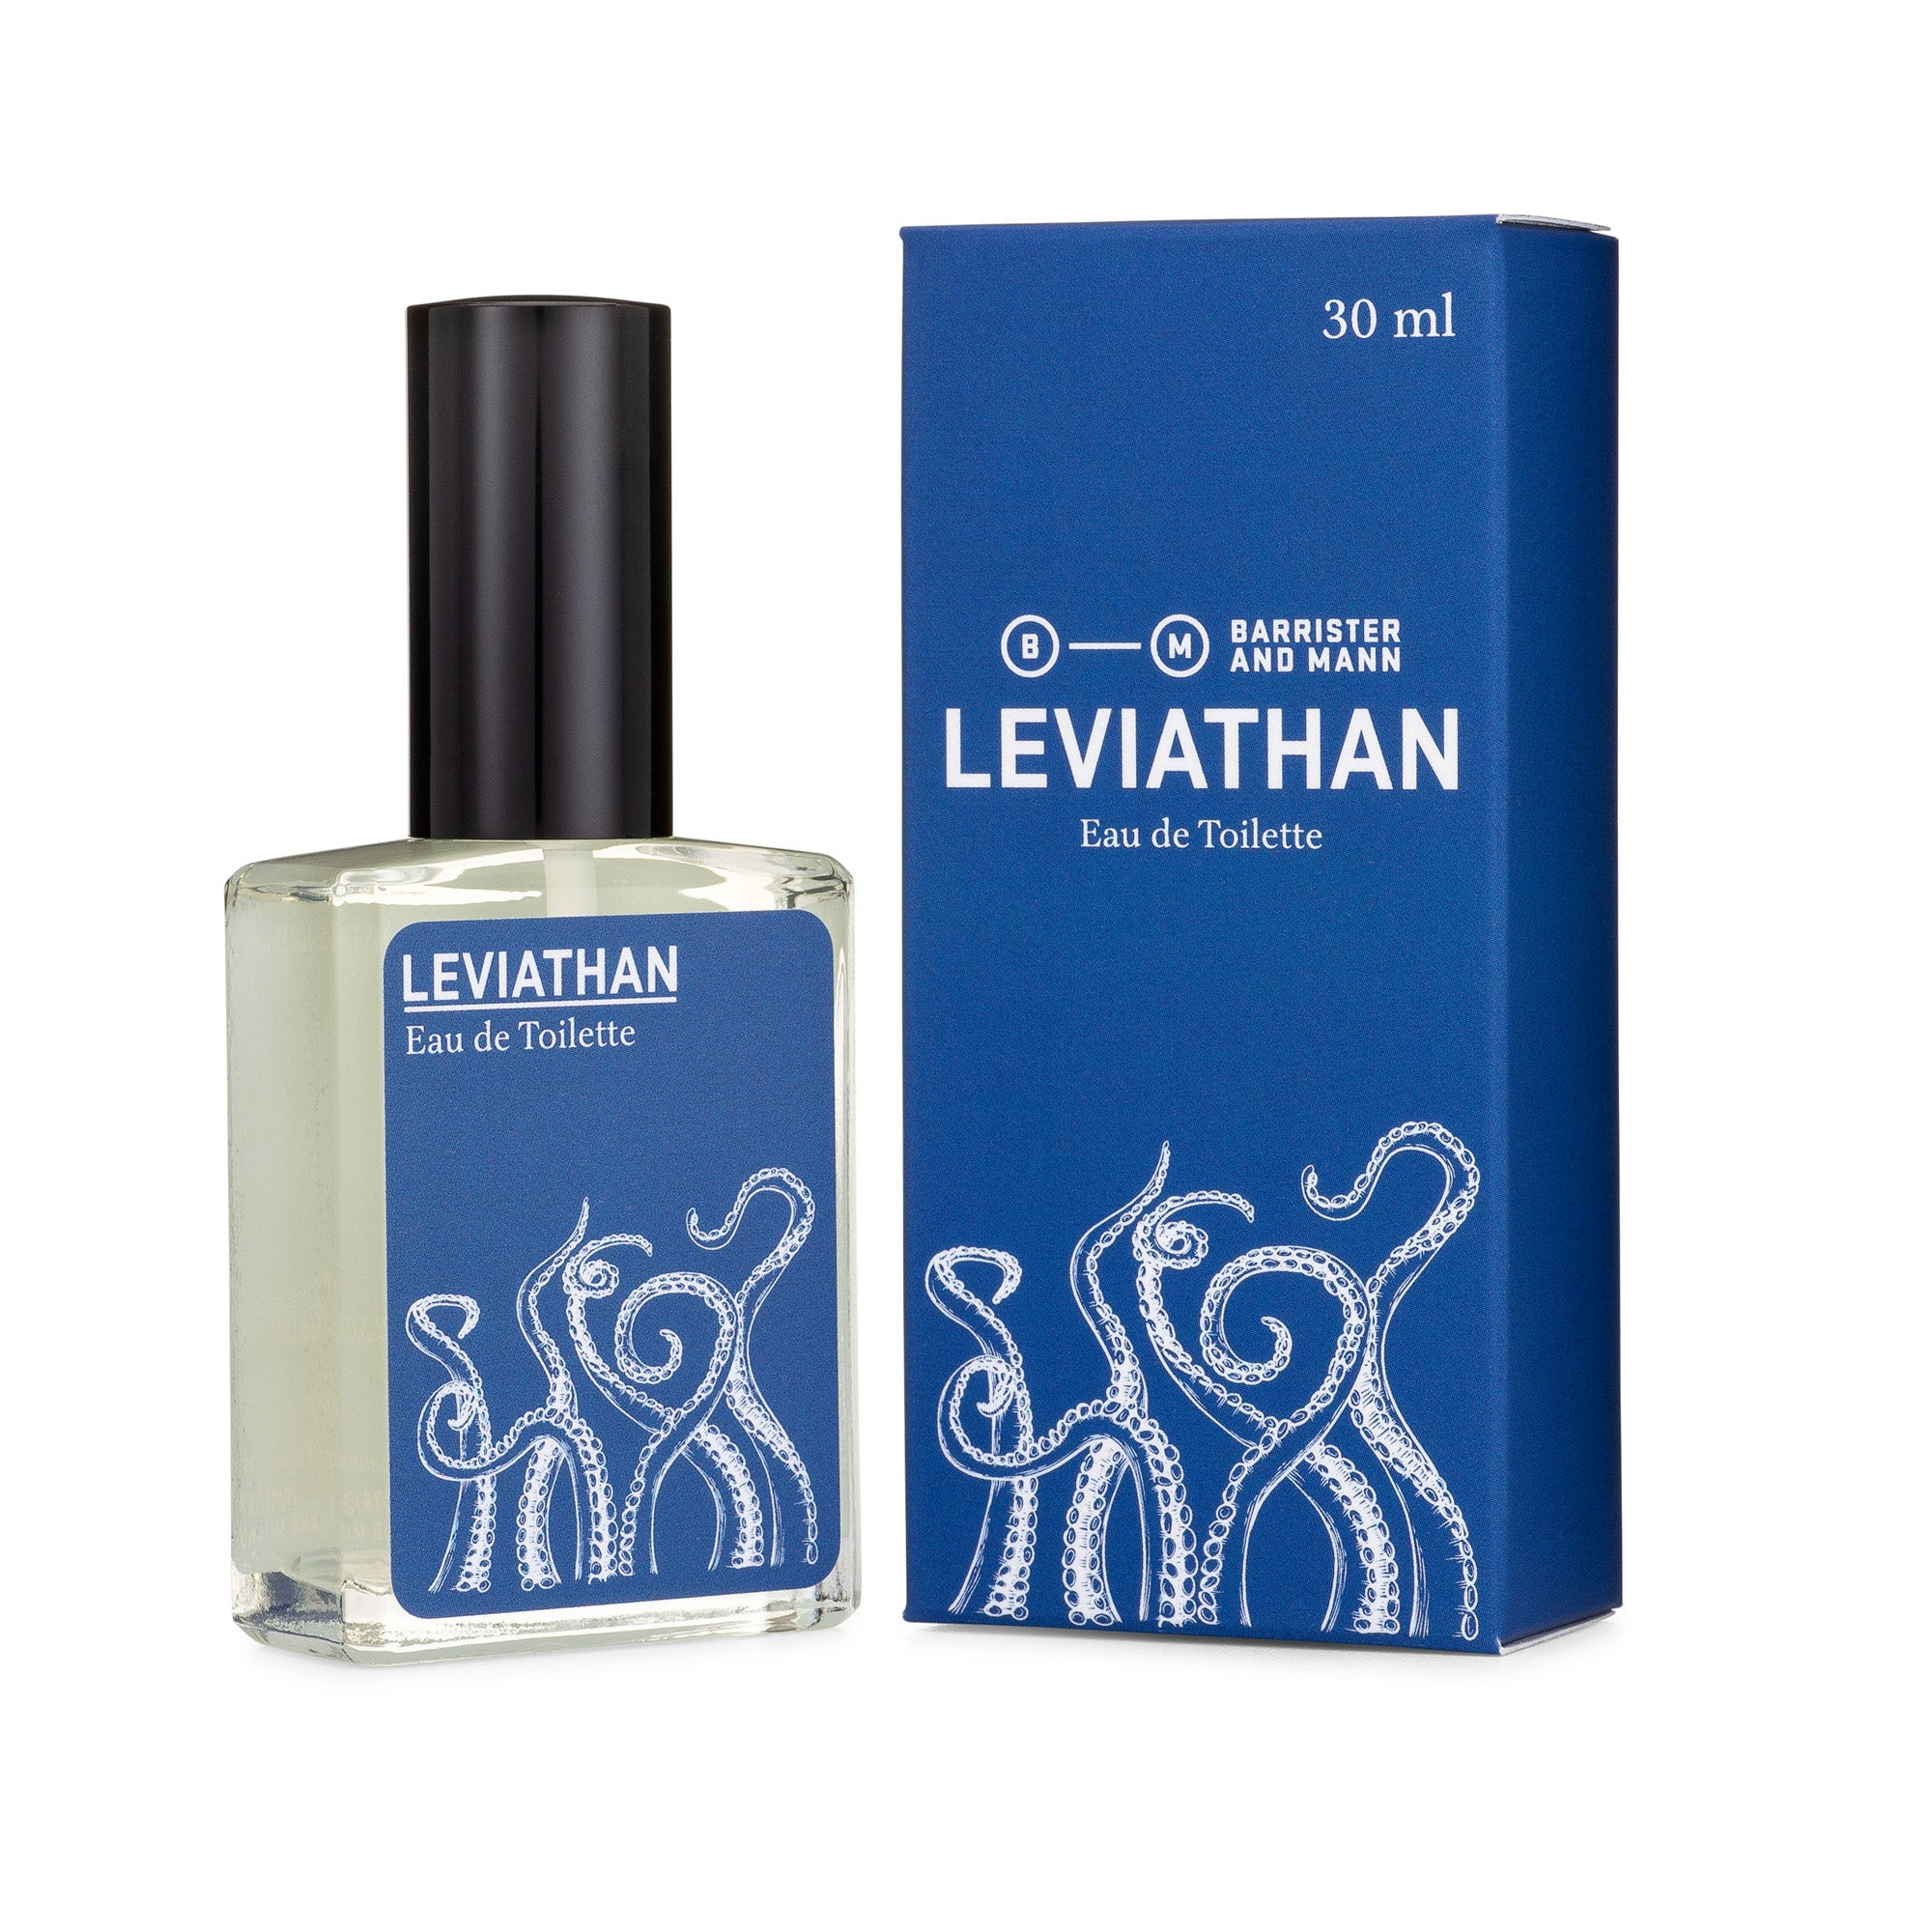 Barrister and Mann Leviathan EAU DE TOILETTE